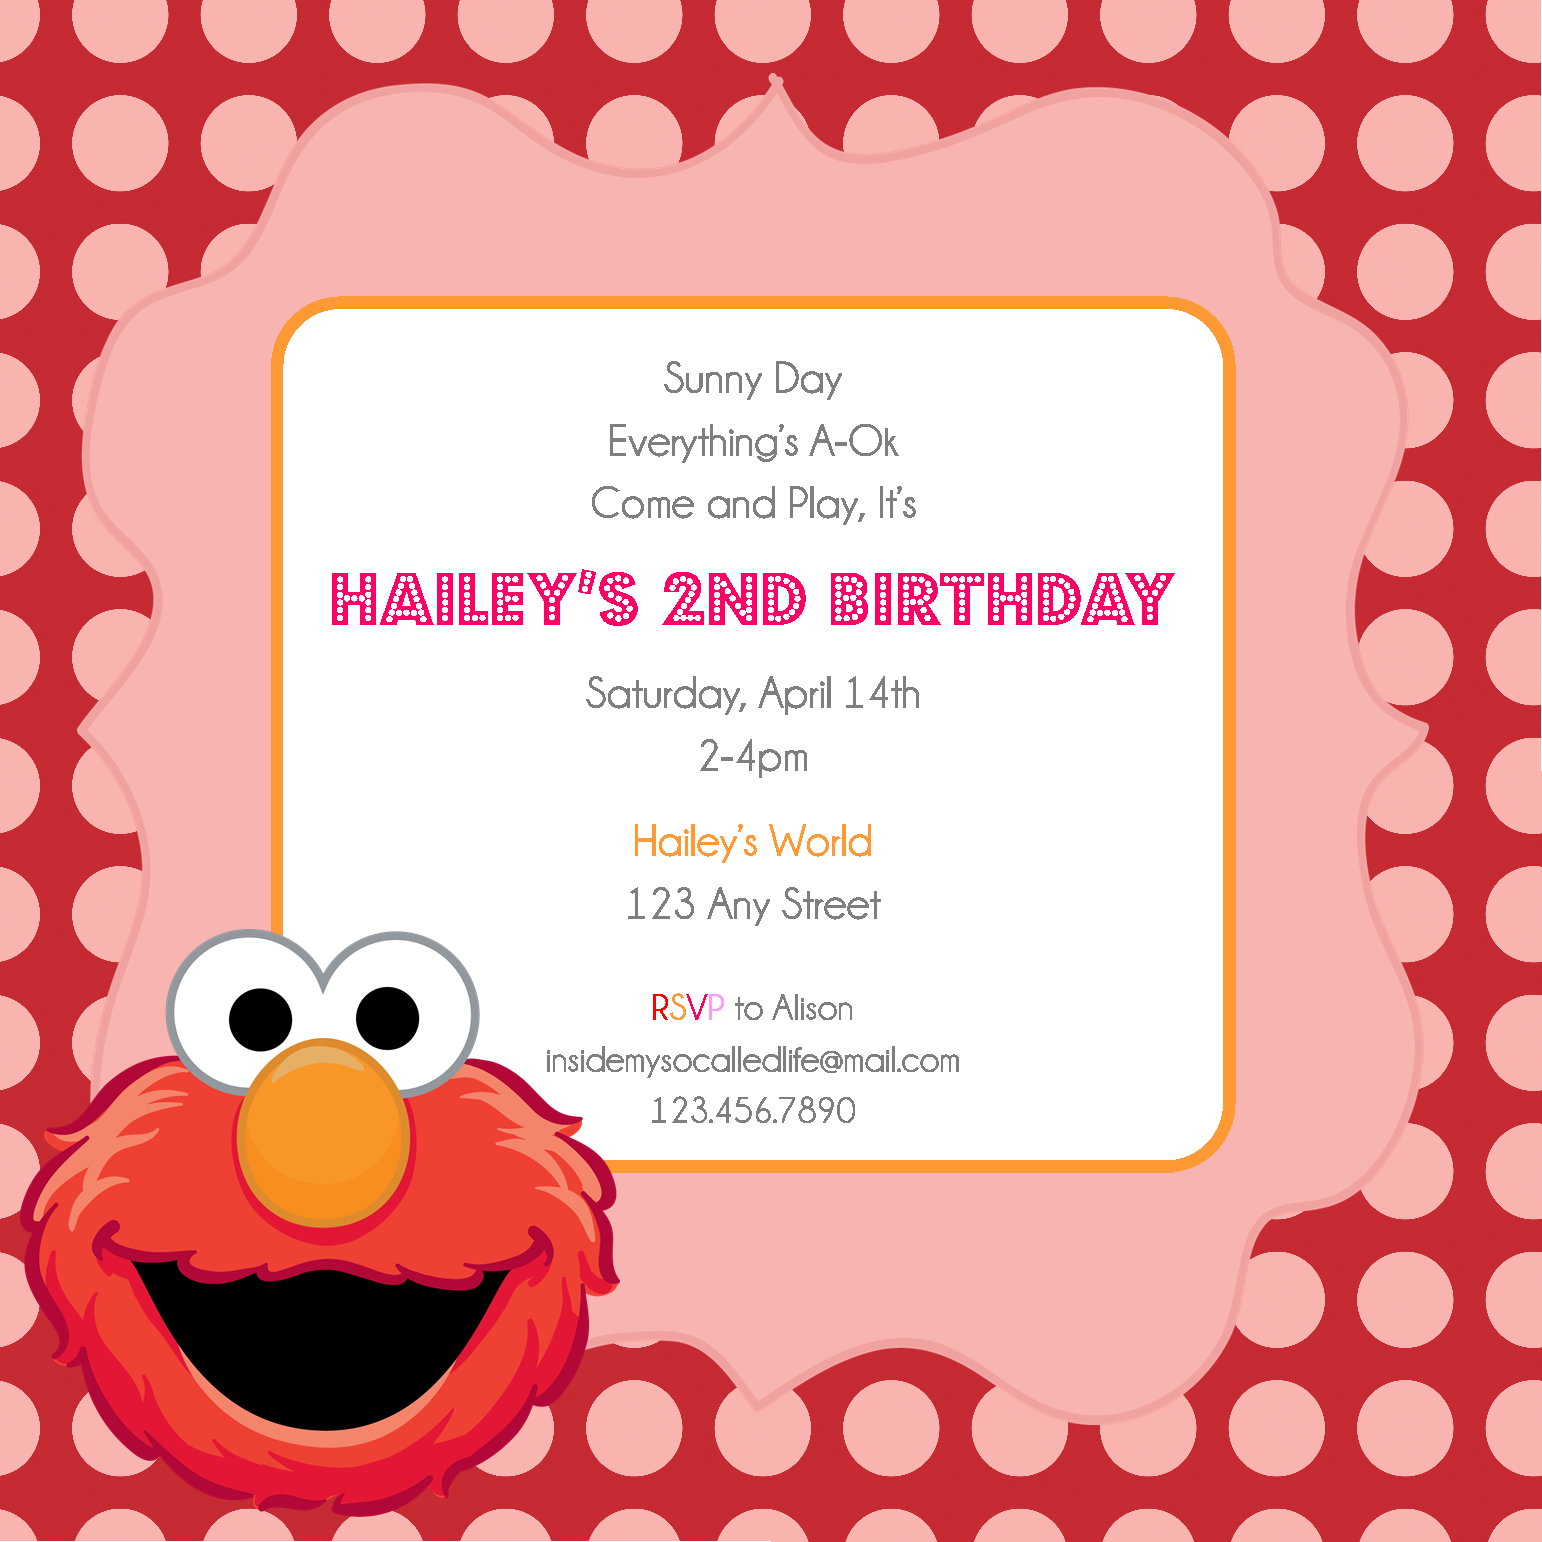 doc format for birthday invitation birthday invitation nursing assistant resume objectivedoc585436 format for birthday format for birthday invitation 40th birthday party invitation template